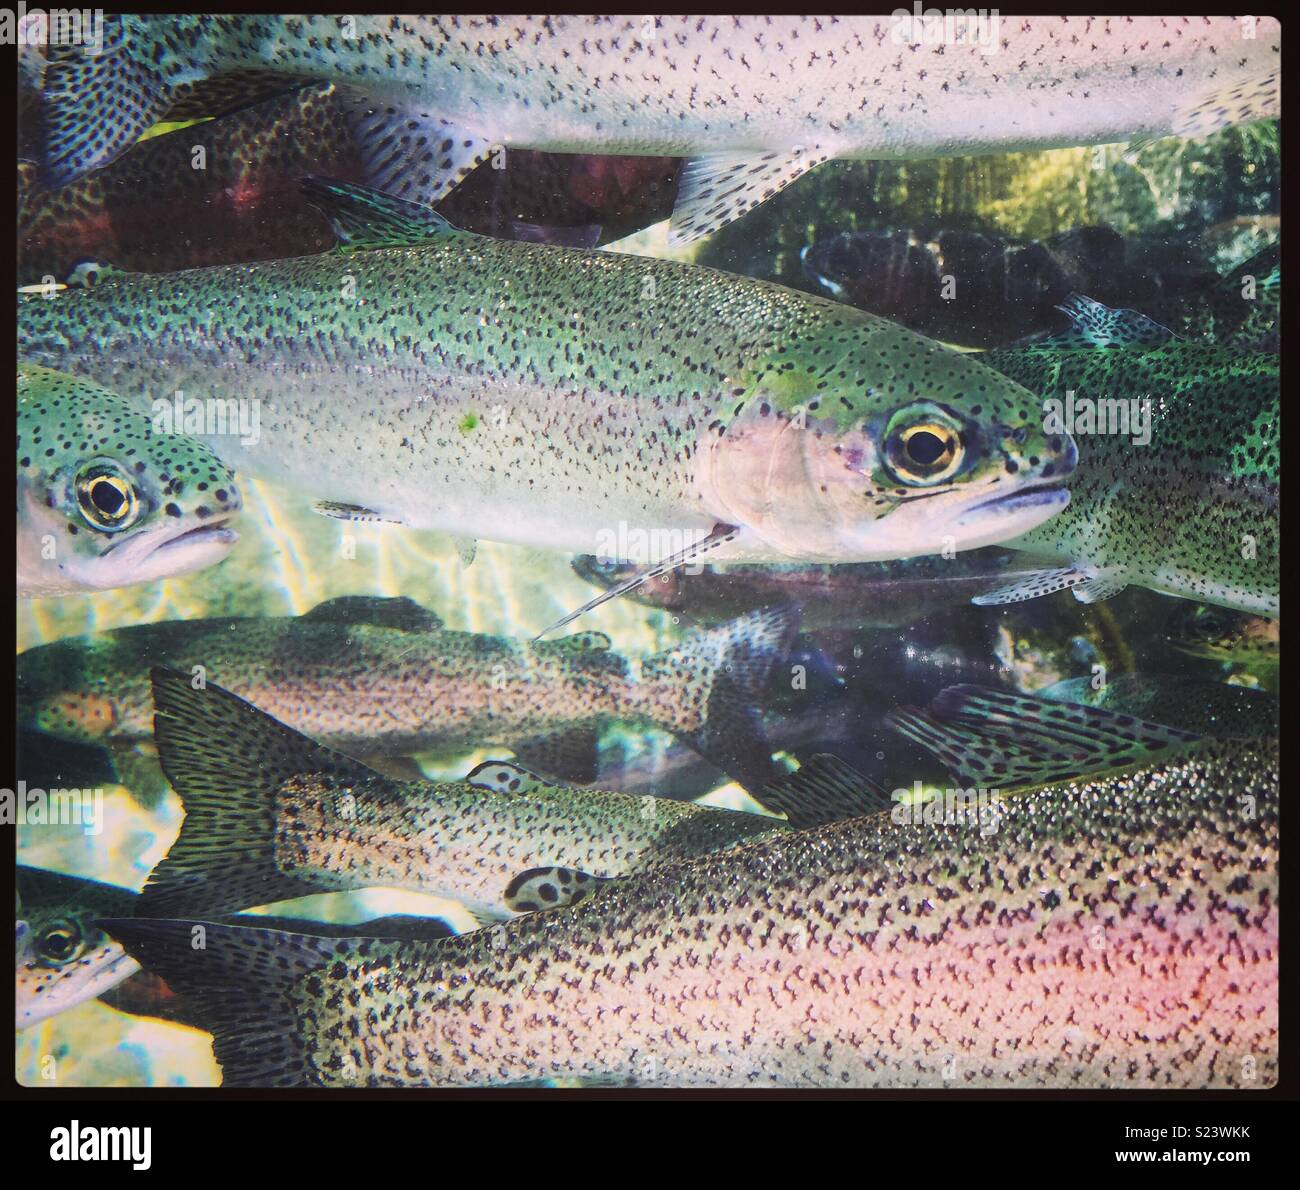 Something fishy...California Steelhead - Stock Image